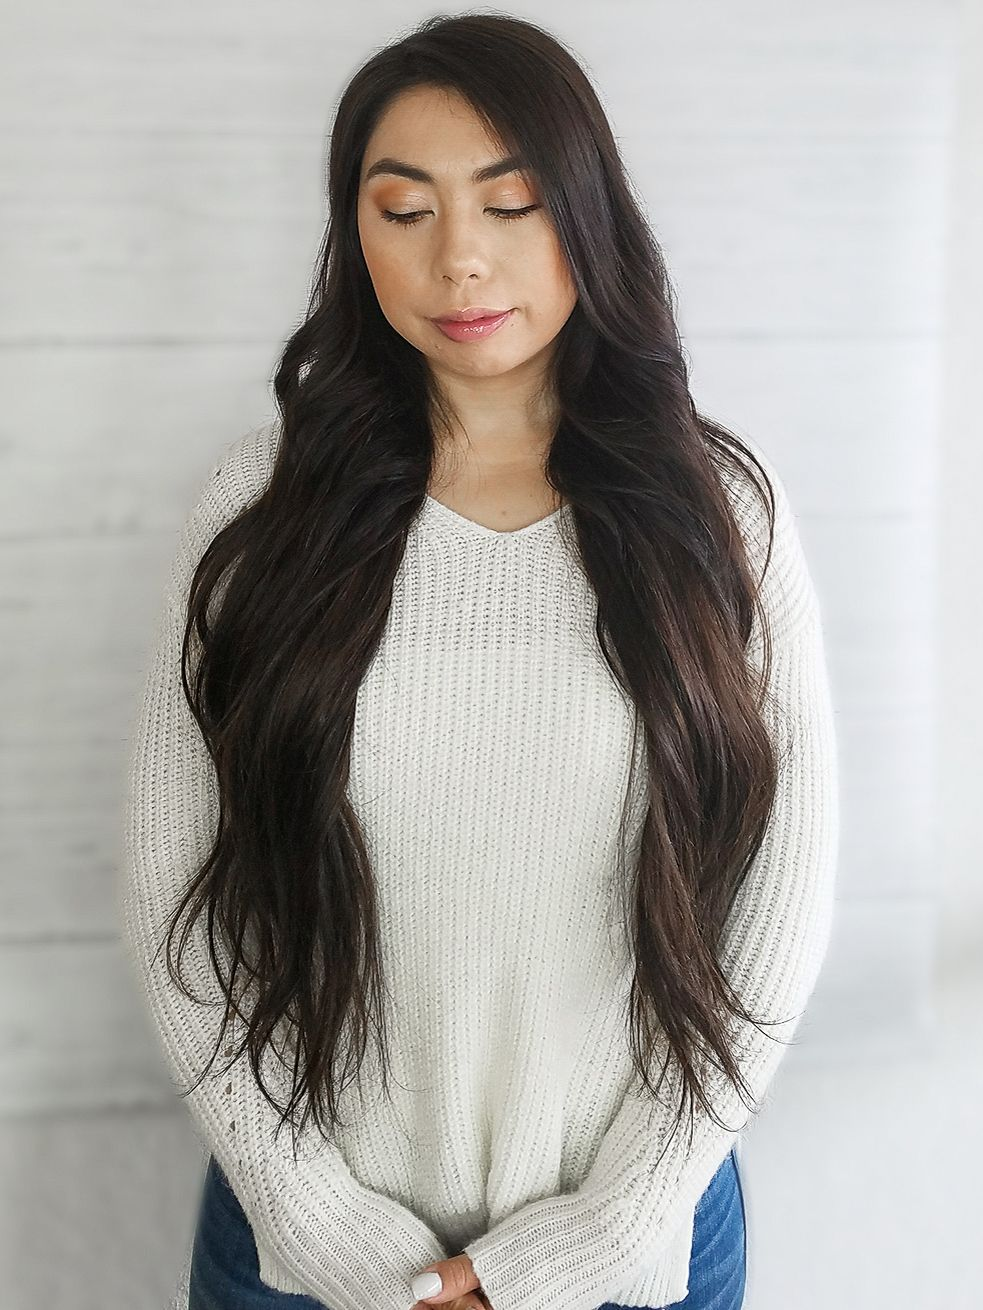 Having hair extensions can be easy as long as you do the